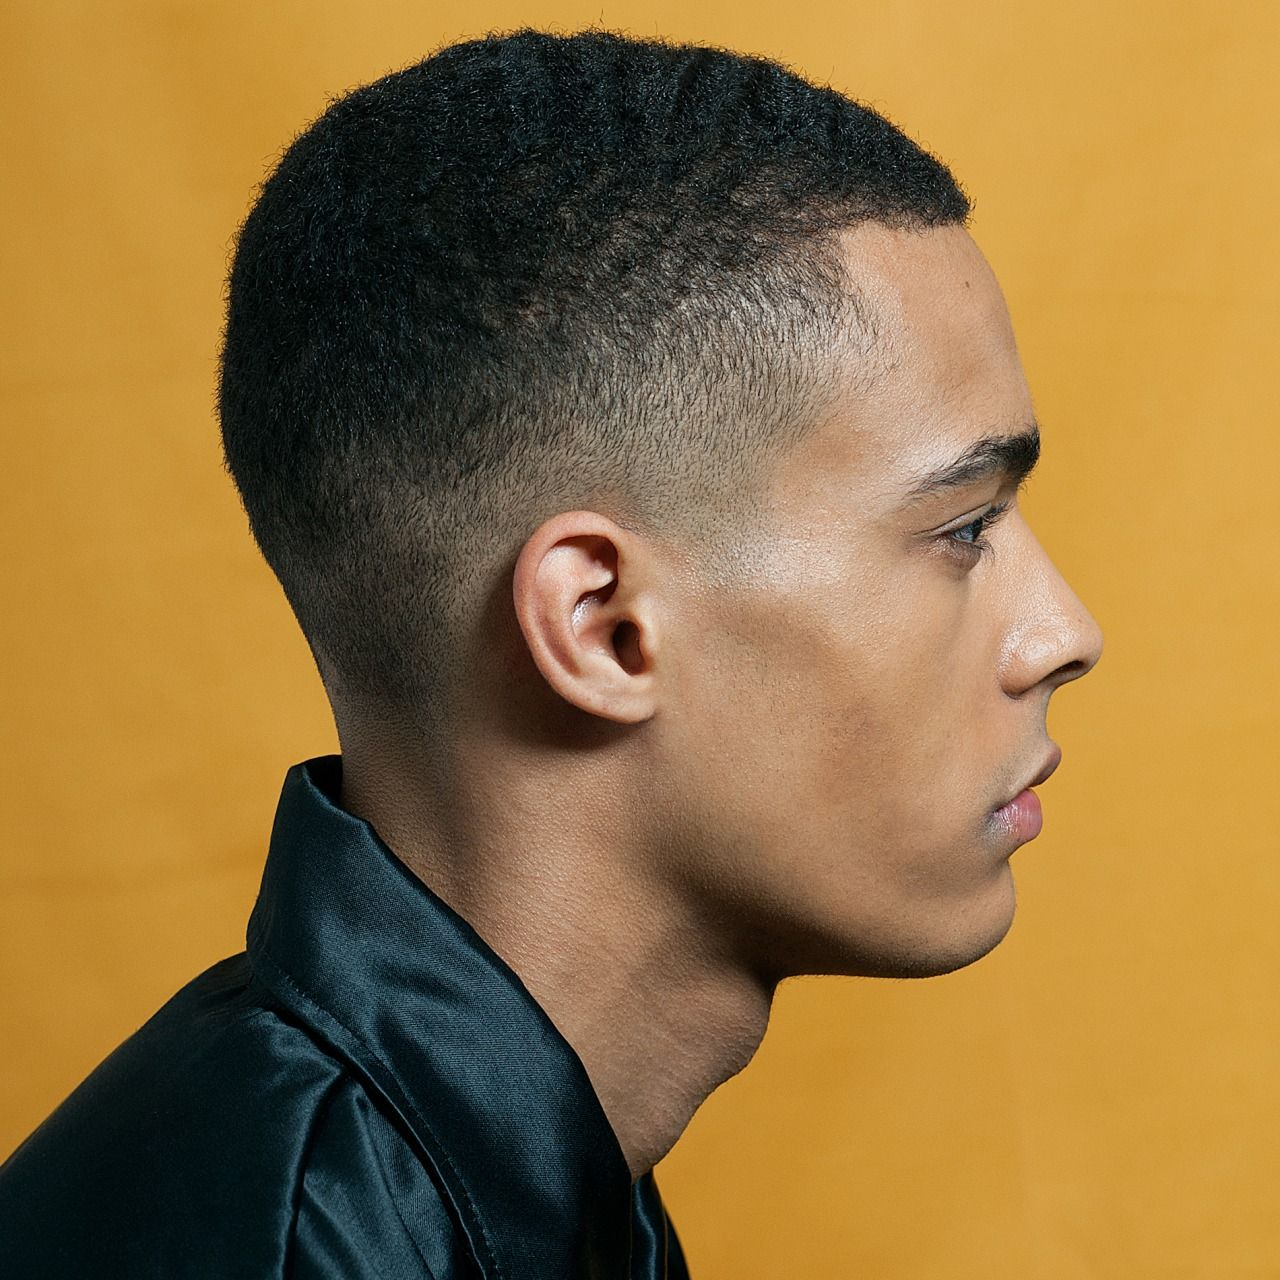 Haircut for men according to face shape pin by audrey  on hp honest  pinterest  black boys oc and people